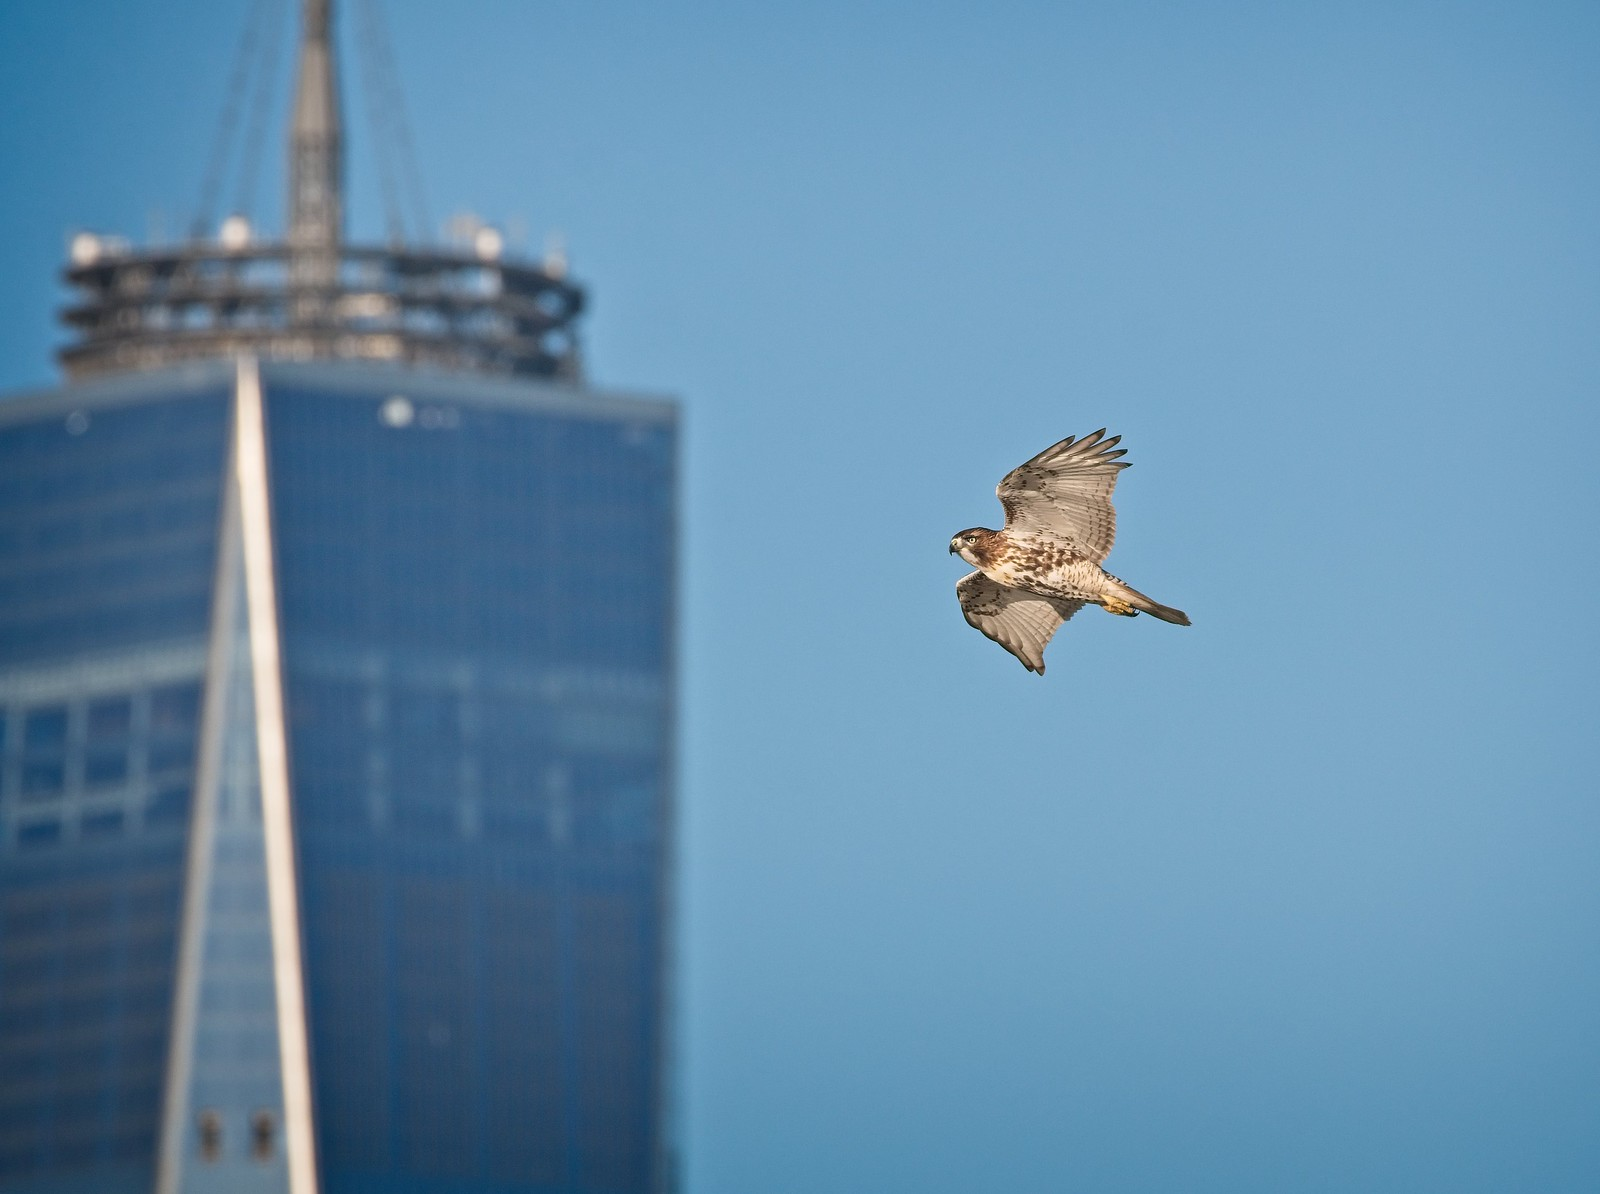 Red-tail flying past the World Trade Center